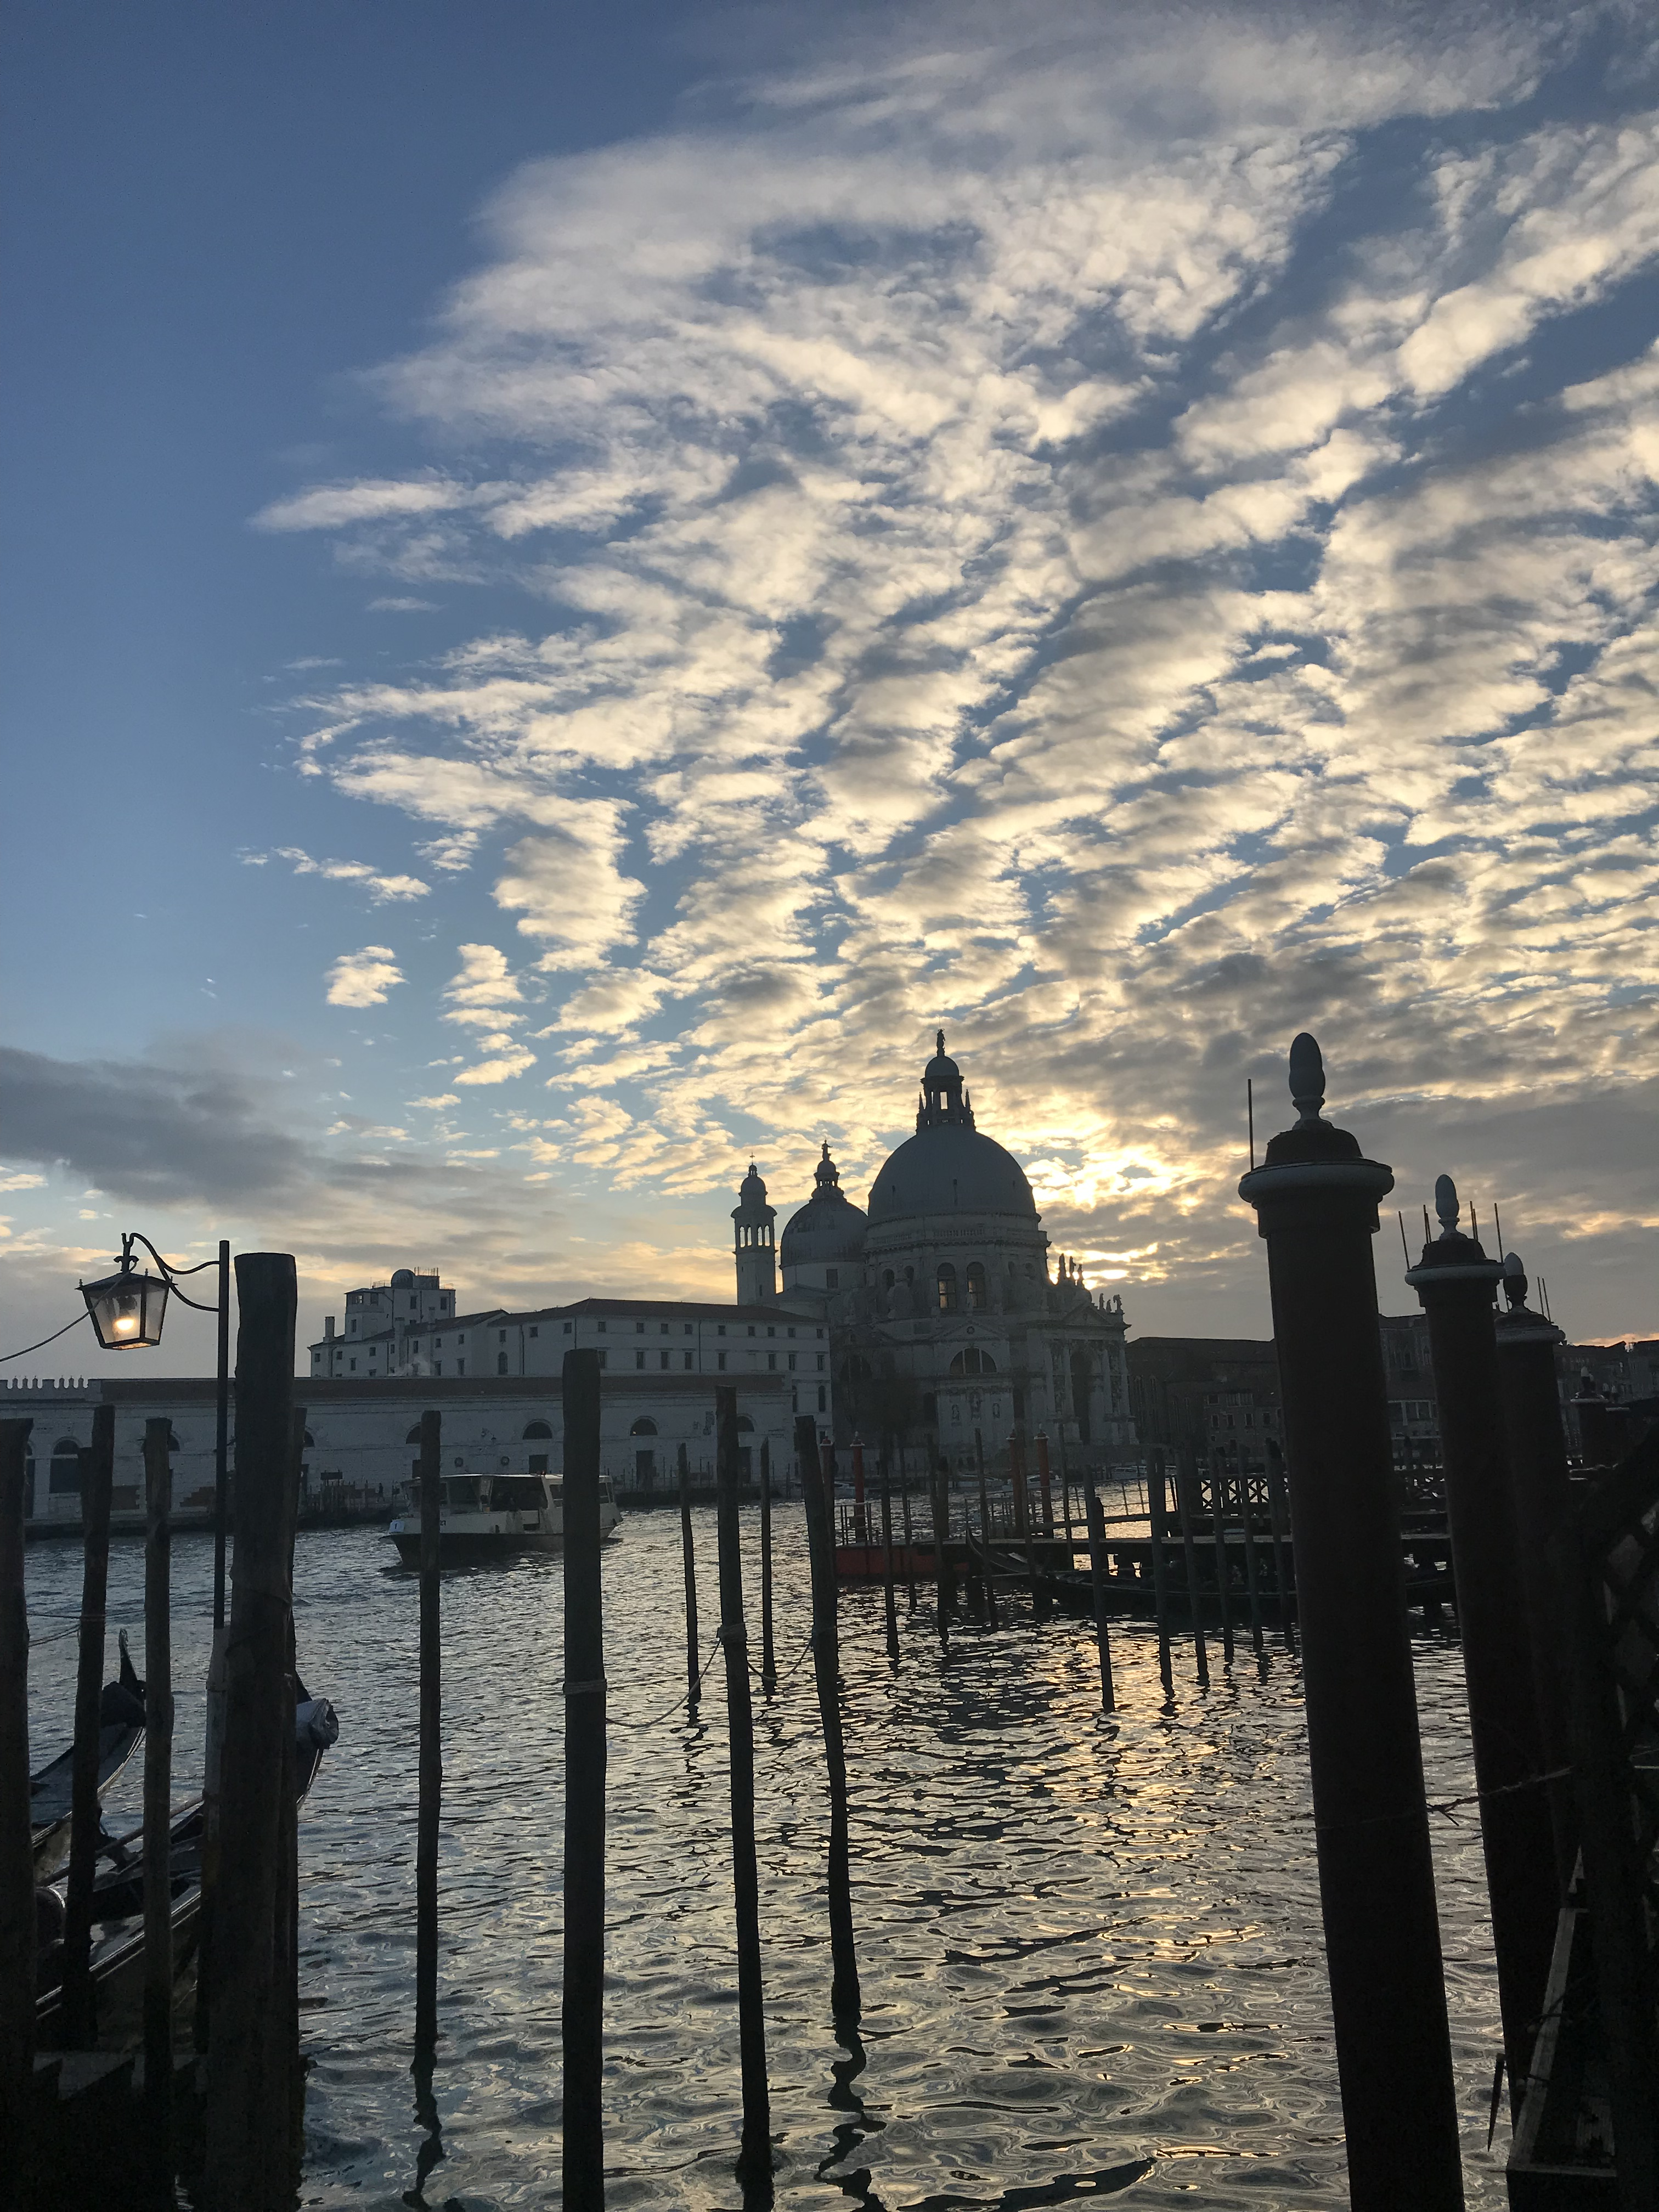 Traveling alone to Venice